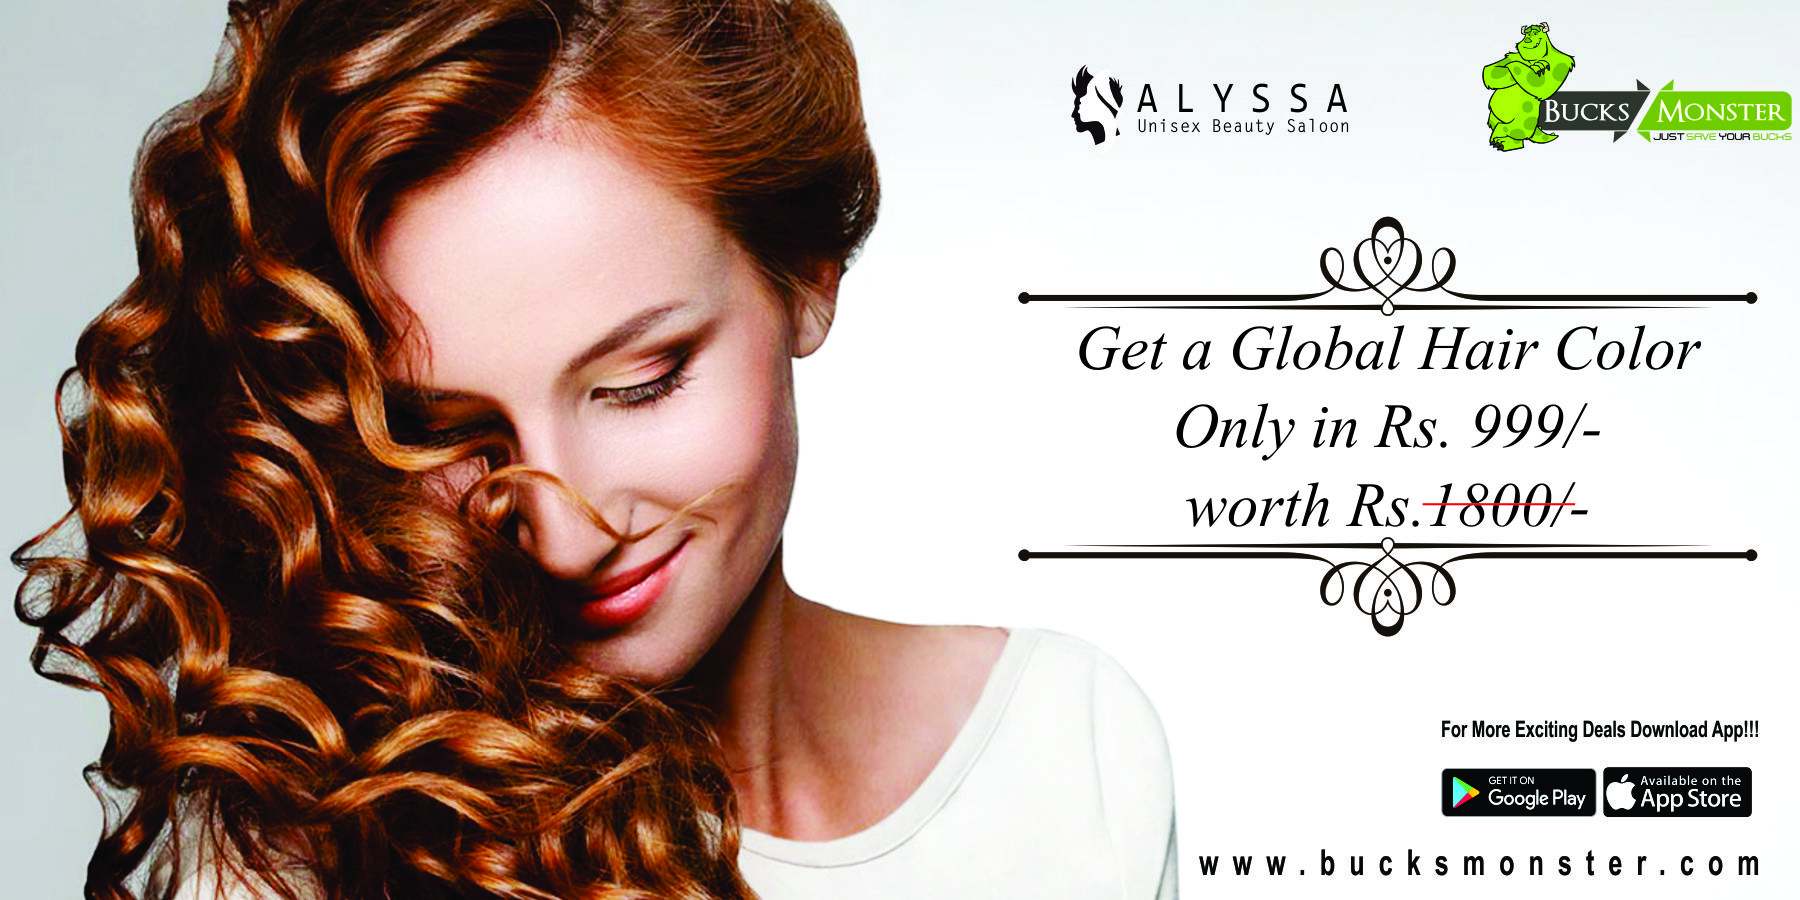 Best Haircolorservicesdeals In Chandigarh Dont Miss